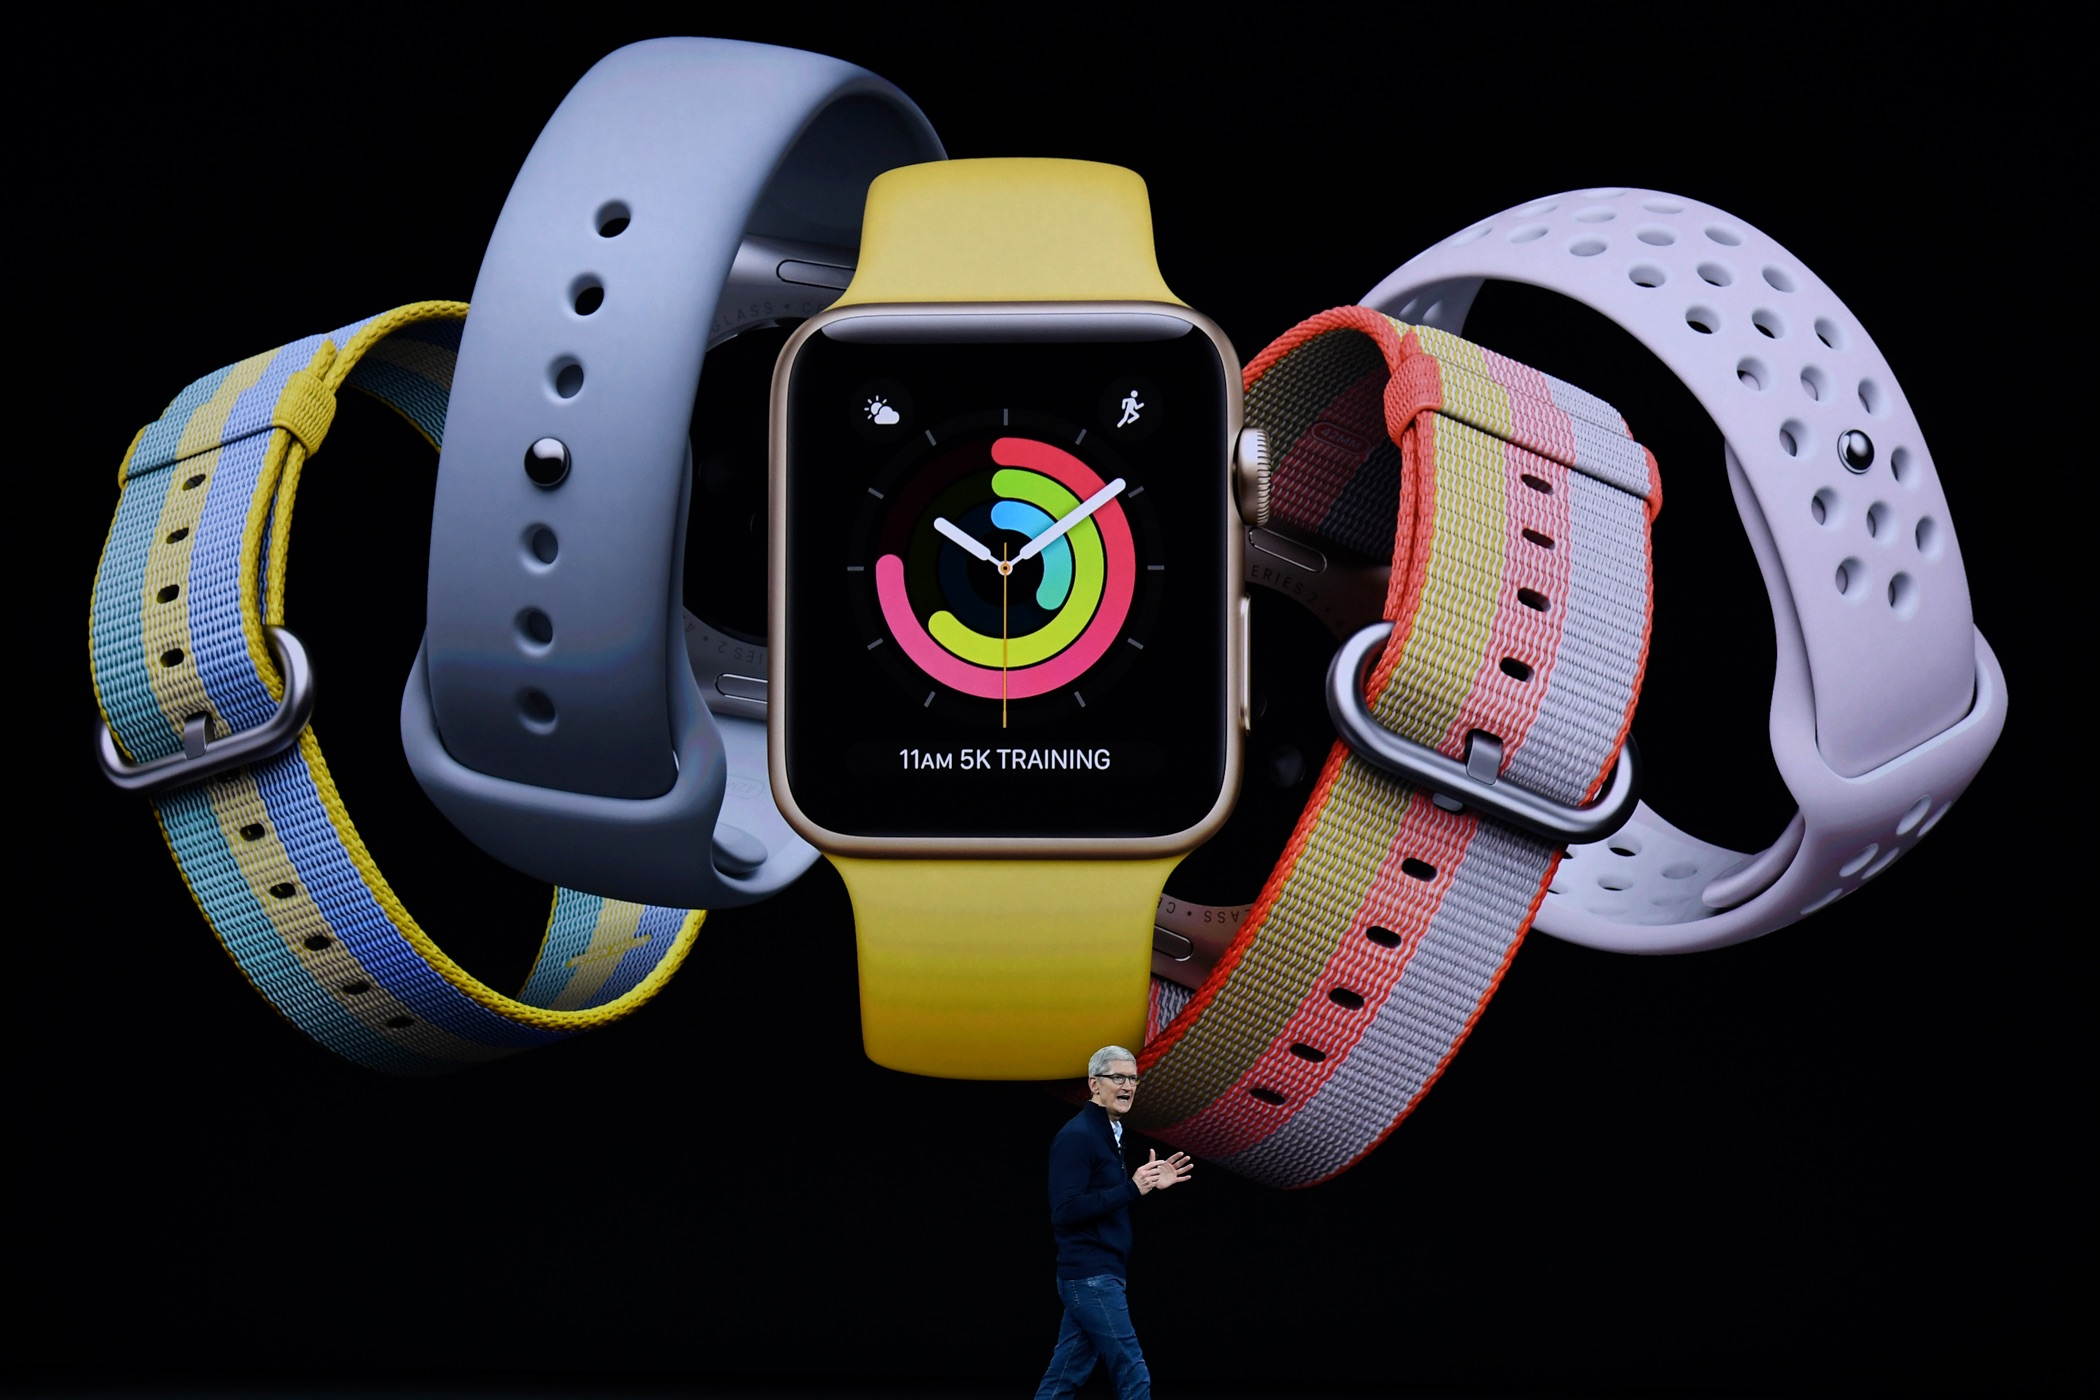 Apple CEO Tim Cook introduces Apple Watch during the Apple launch event on September 12, 2017 in Cupertino,California. Apple Inc. unveiled its new iPhone 8, iPhone X, iPhone 8 Plus, and the Apple Watch Series 3 at the new Apple Park campus.